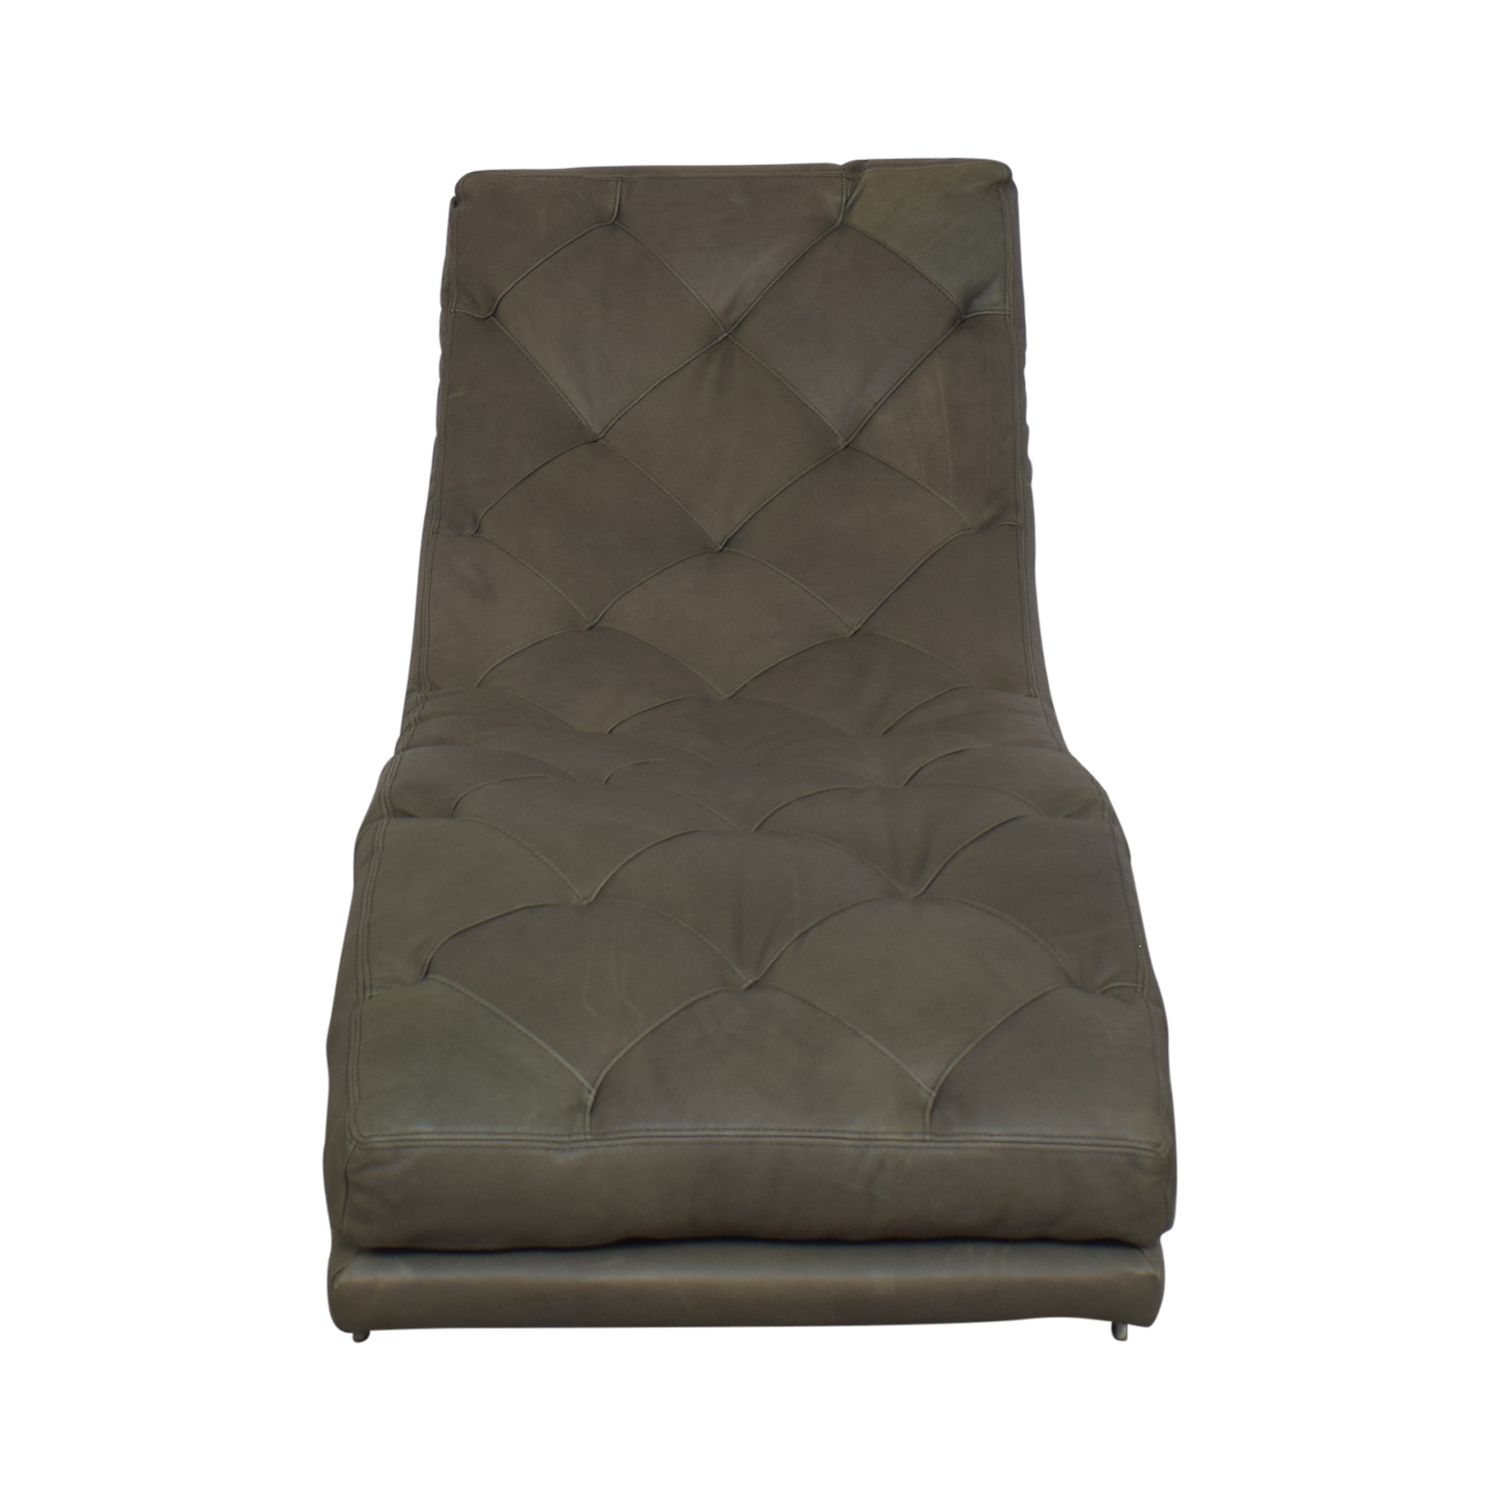 Restoration Hardware Restoration Hardware Royce Chaise for sale